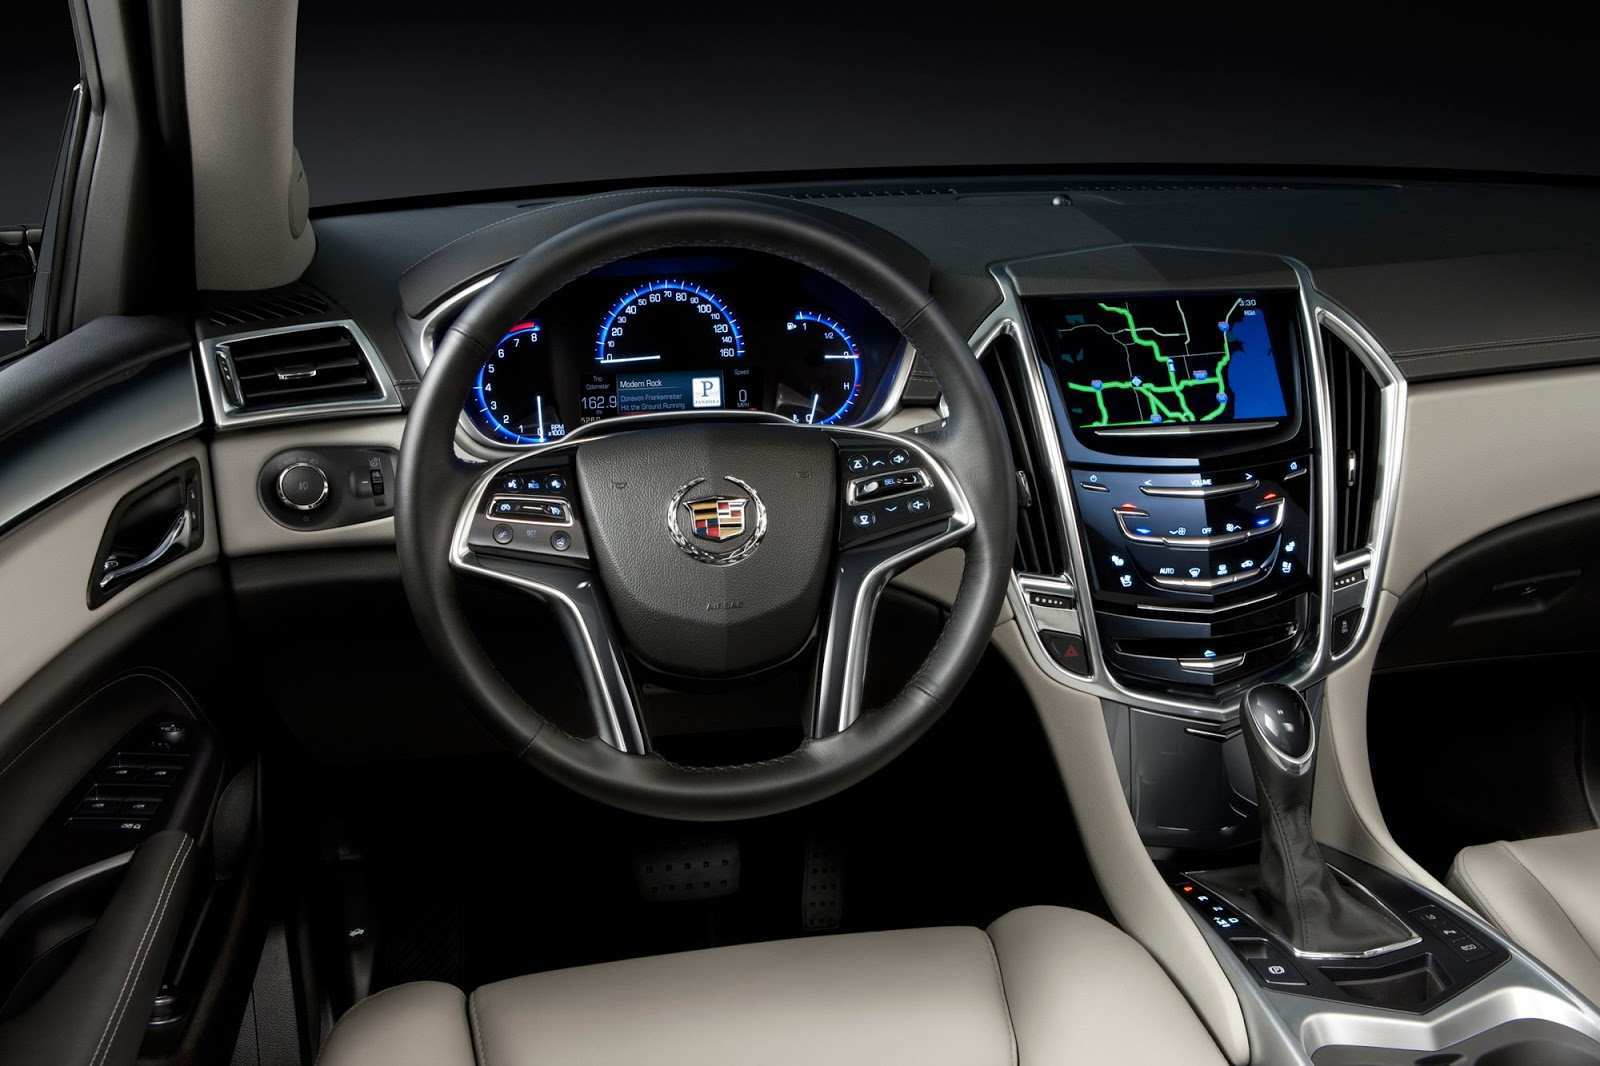 19 All New 2020 Cadillac Xt5 Interior New Review